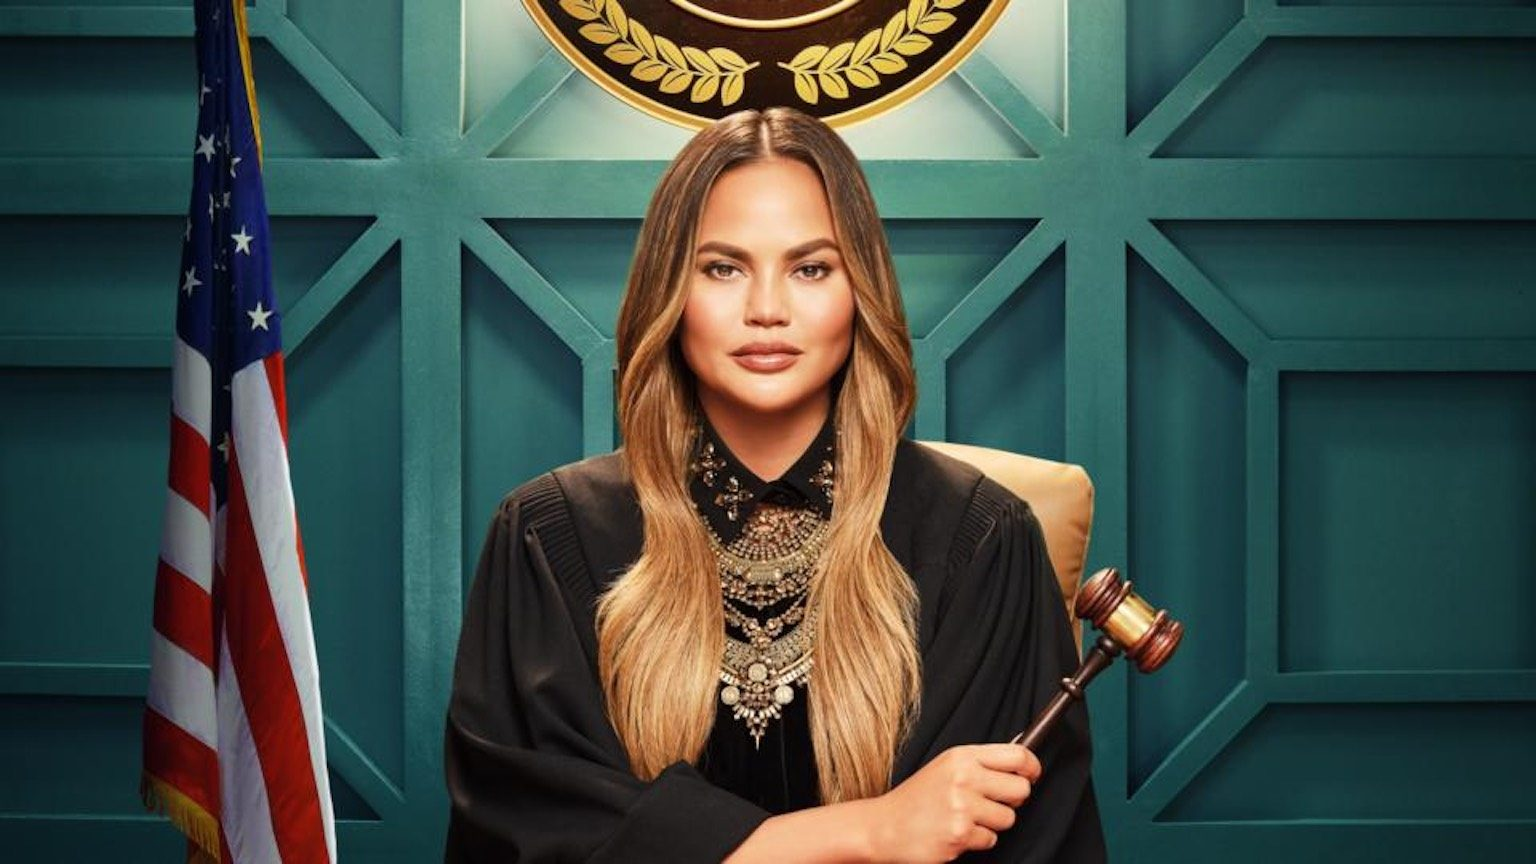 Chrissy Teigen dressed as a judge